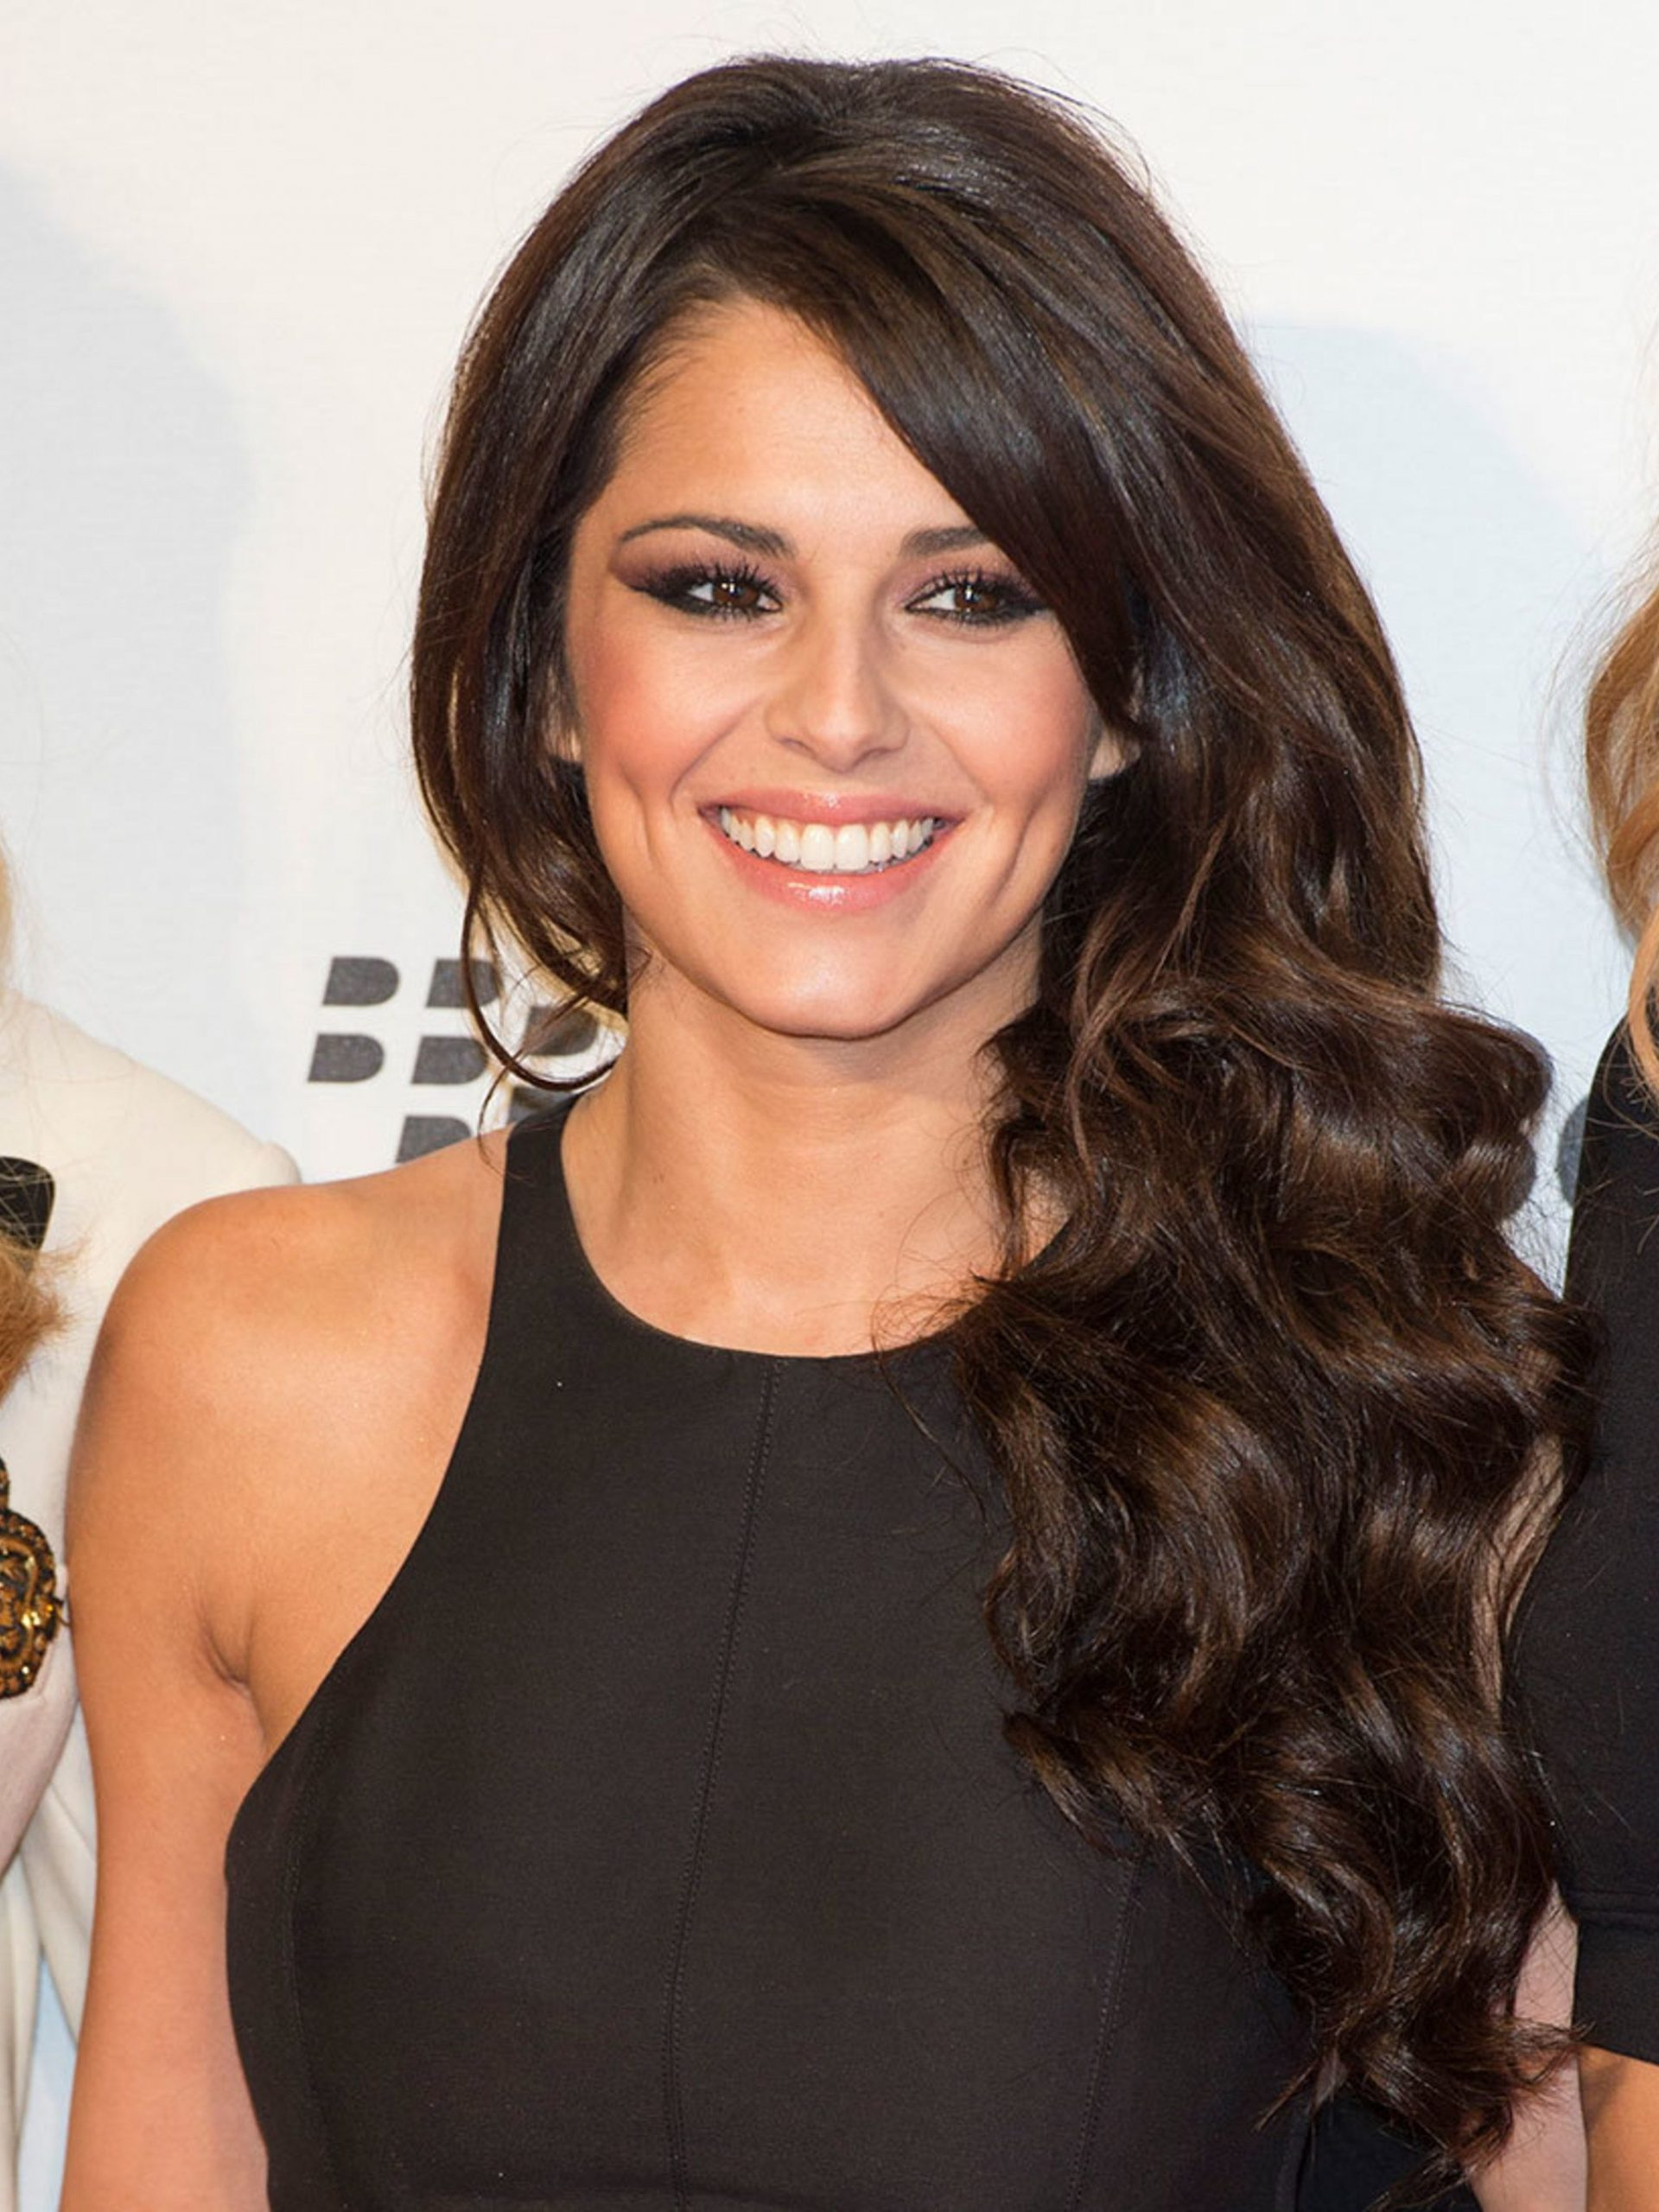 Cheryl Cole new haircut 2020 pictures